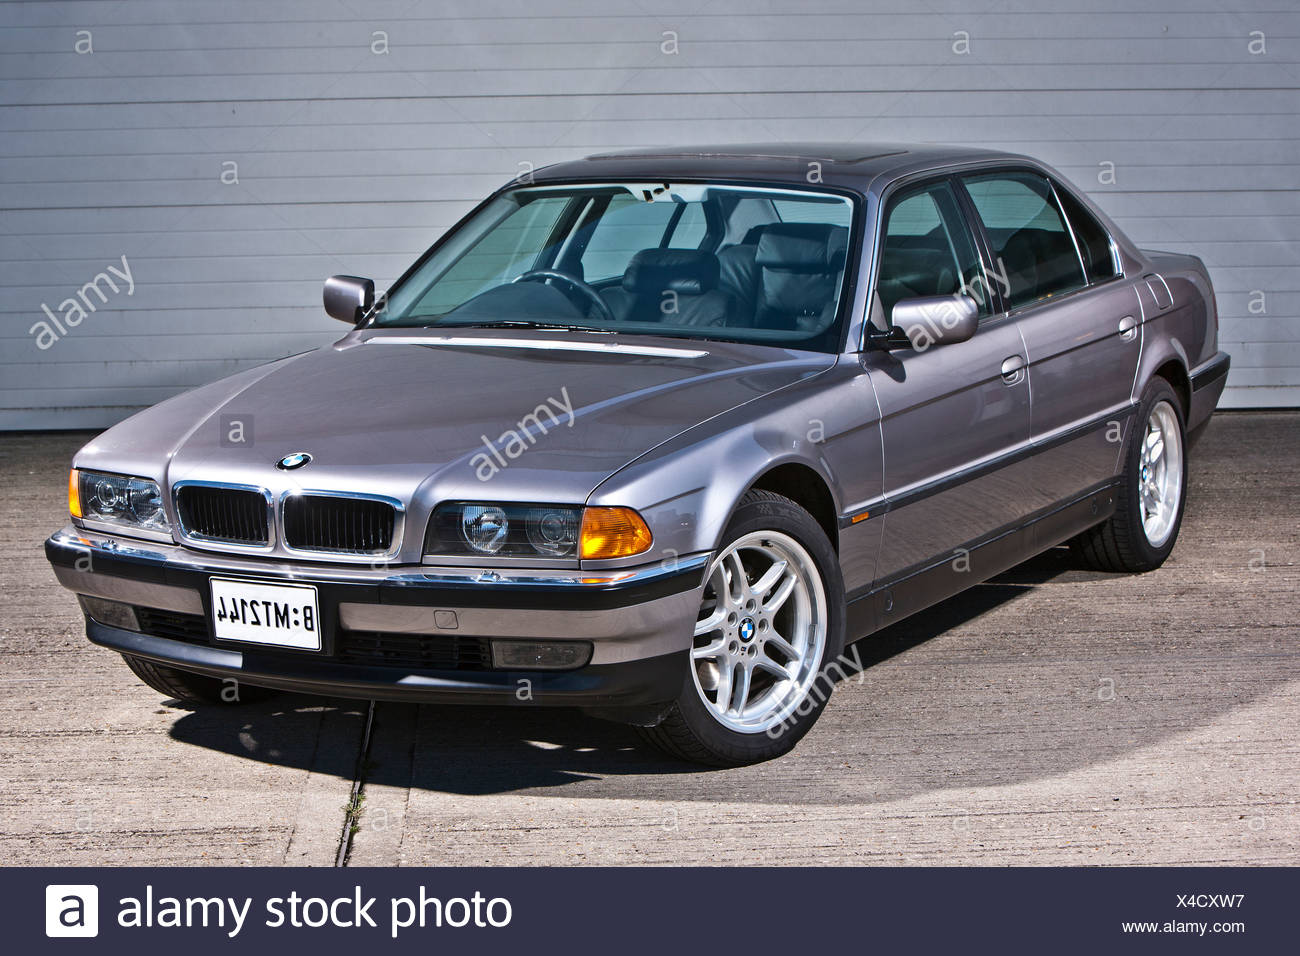 Bmw 7 High Resolution Stock Photography And Images Alamy